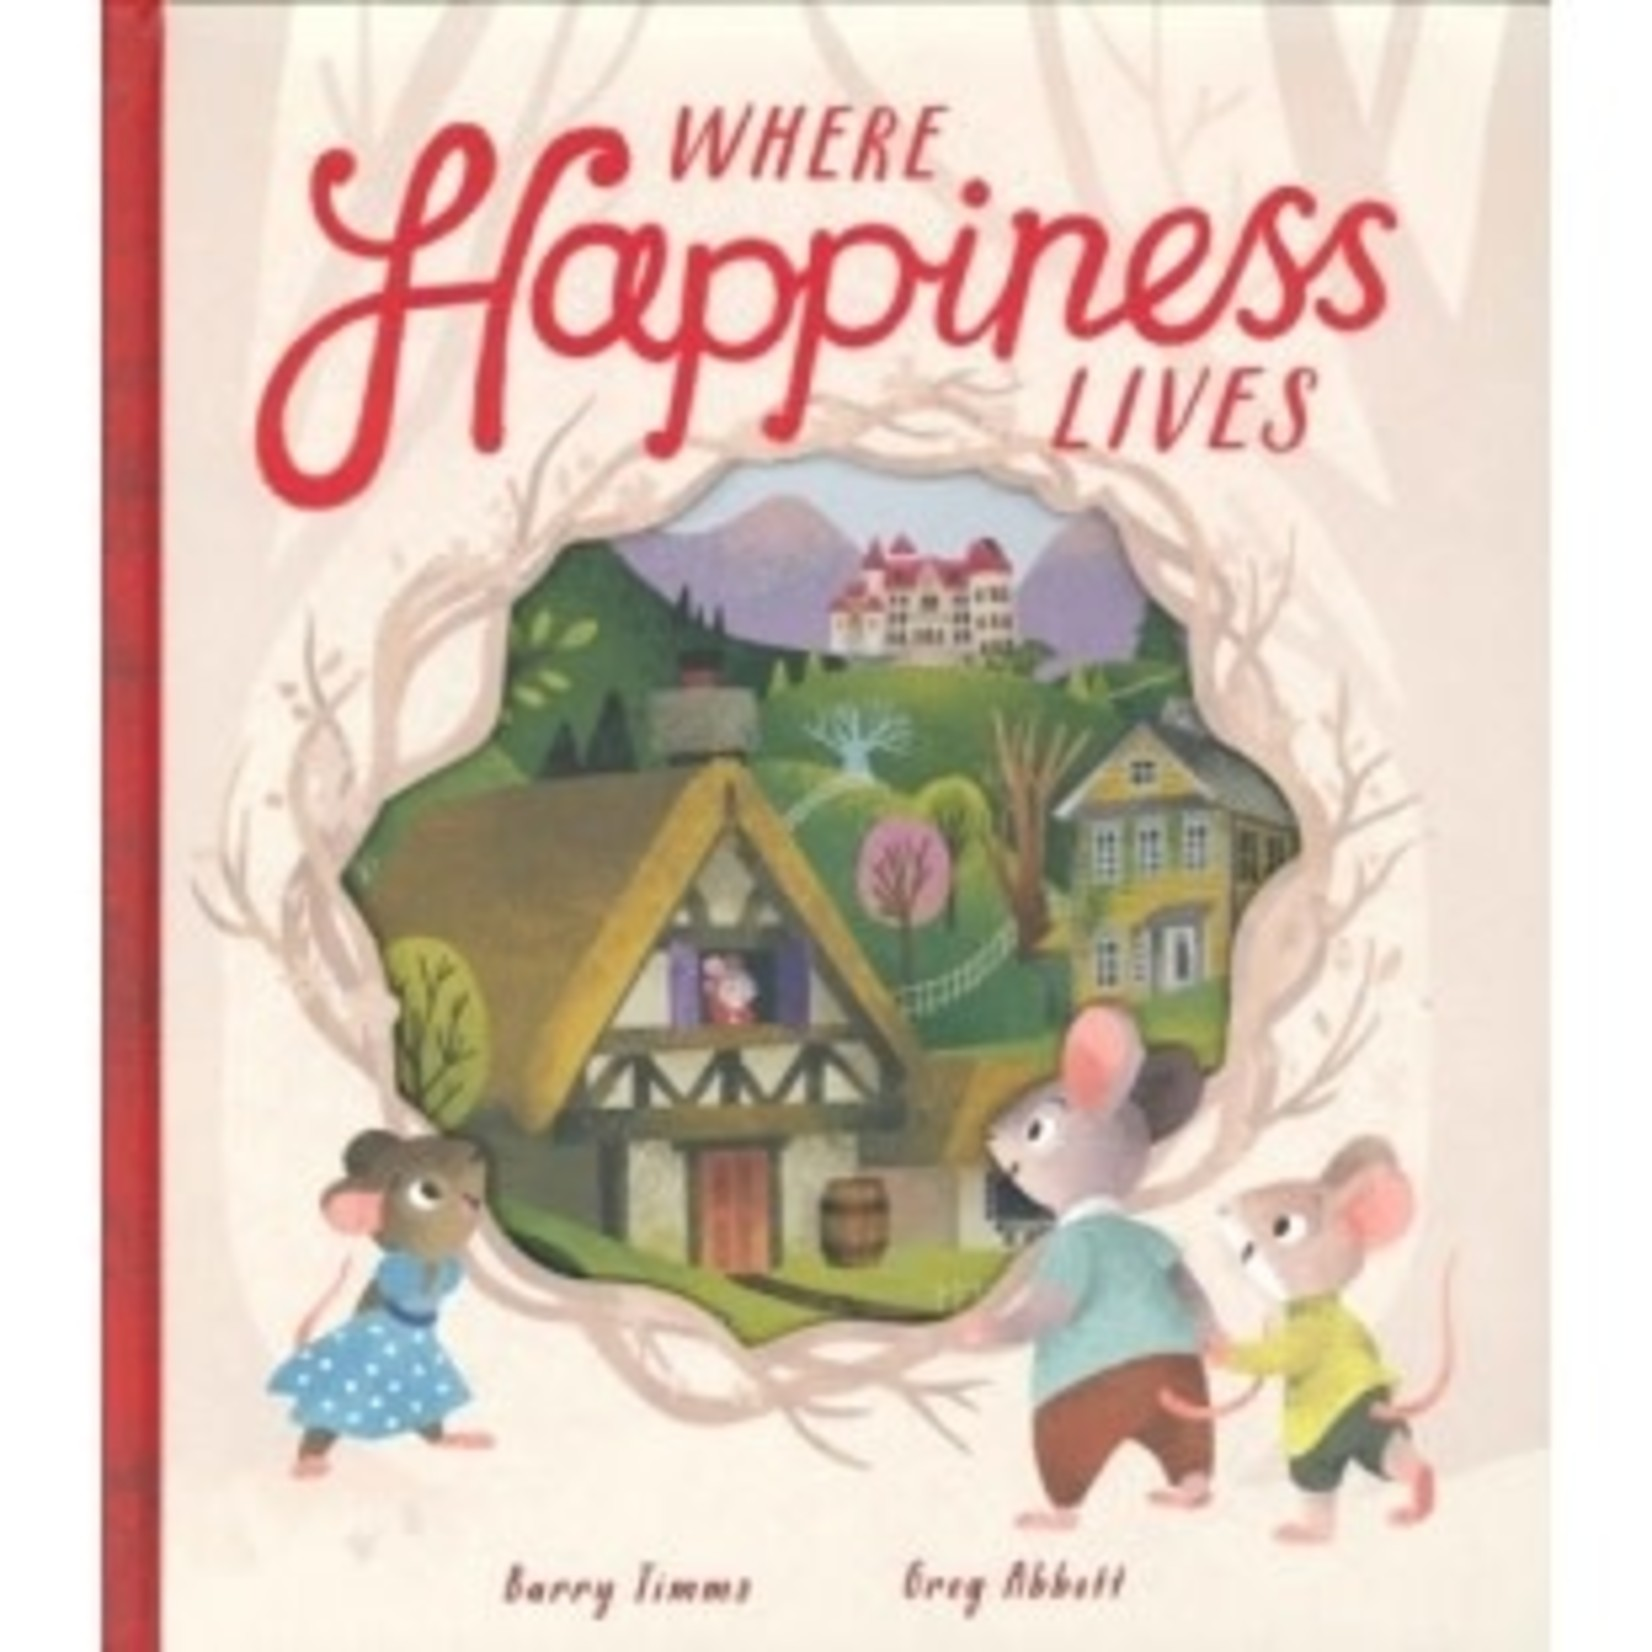 Skandisk, Inc. Book: Where Happiness Lives